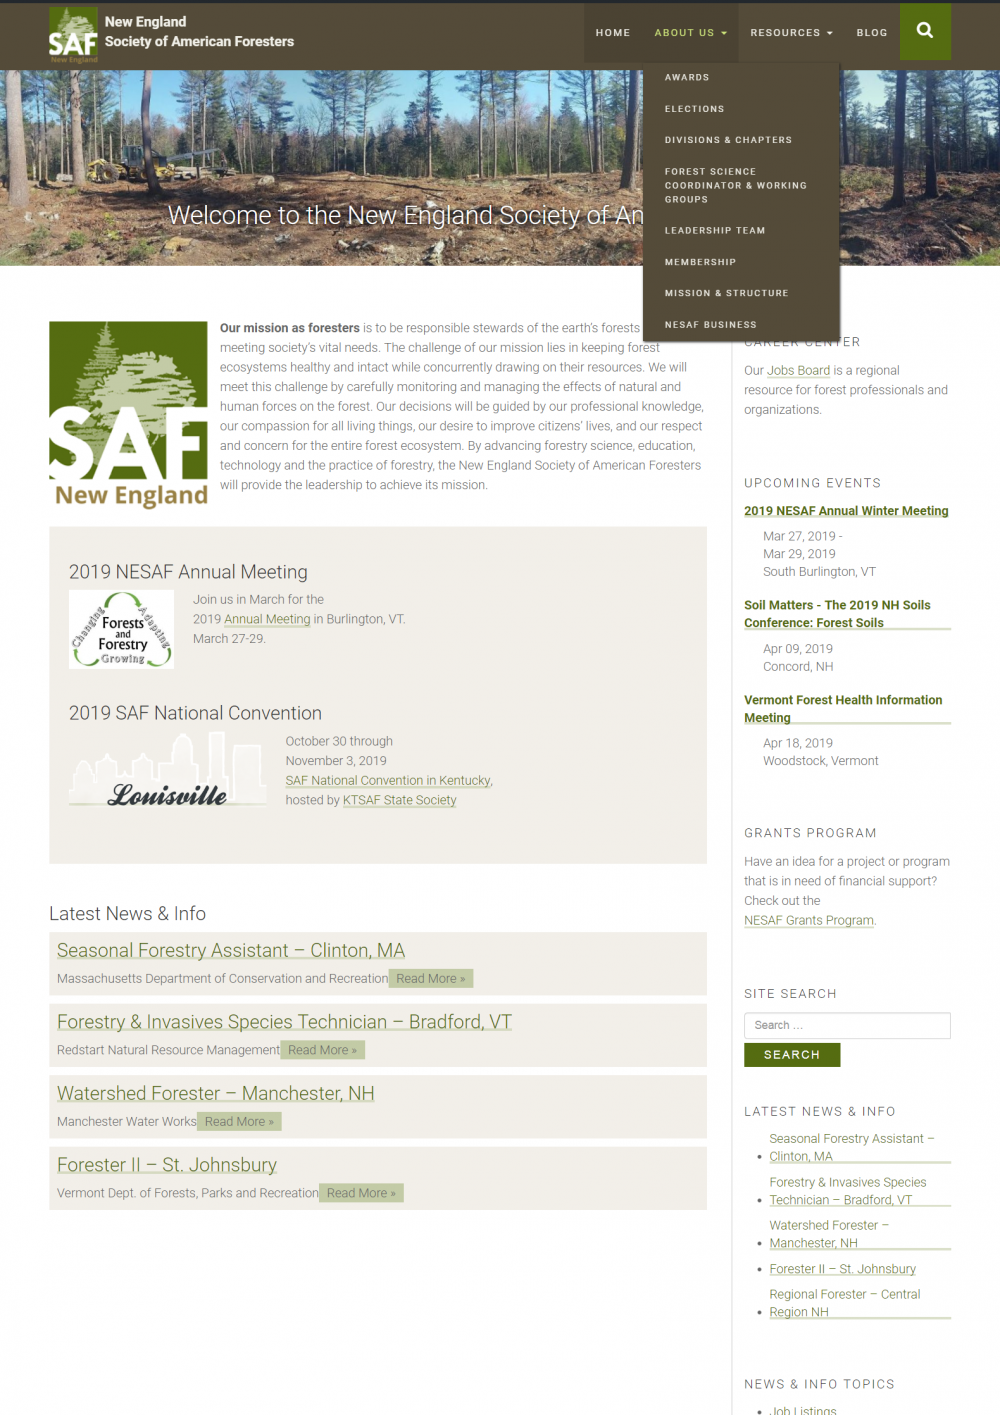 New Website For Forestry Organization